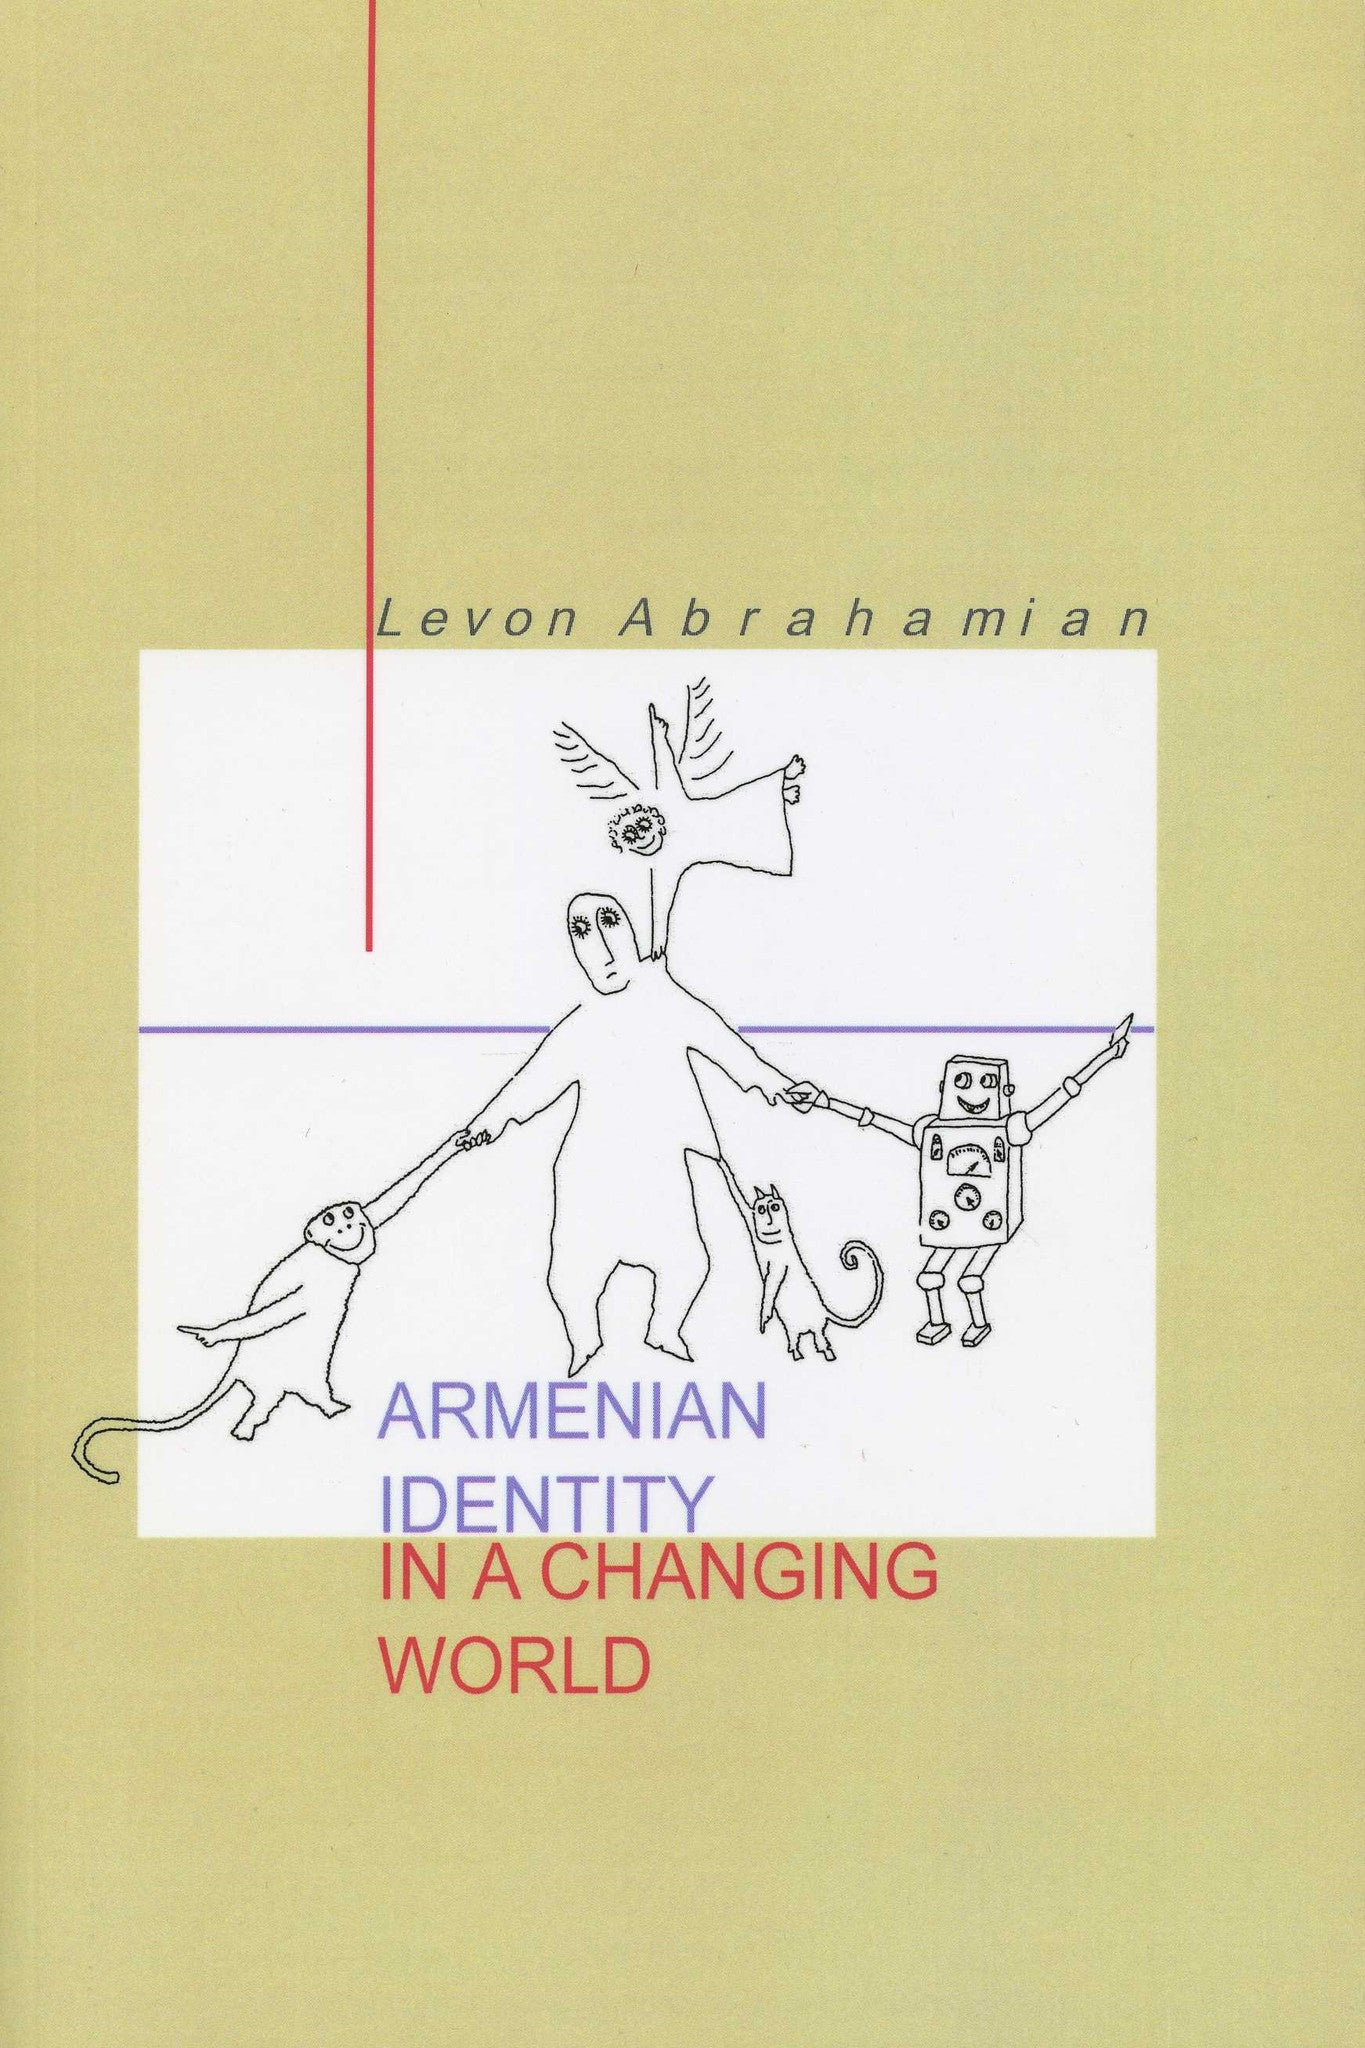 ARMENIAN IDENTITY IN A CHANGING WORLD